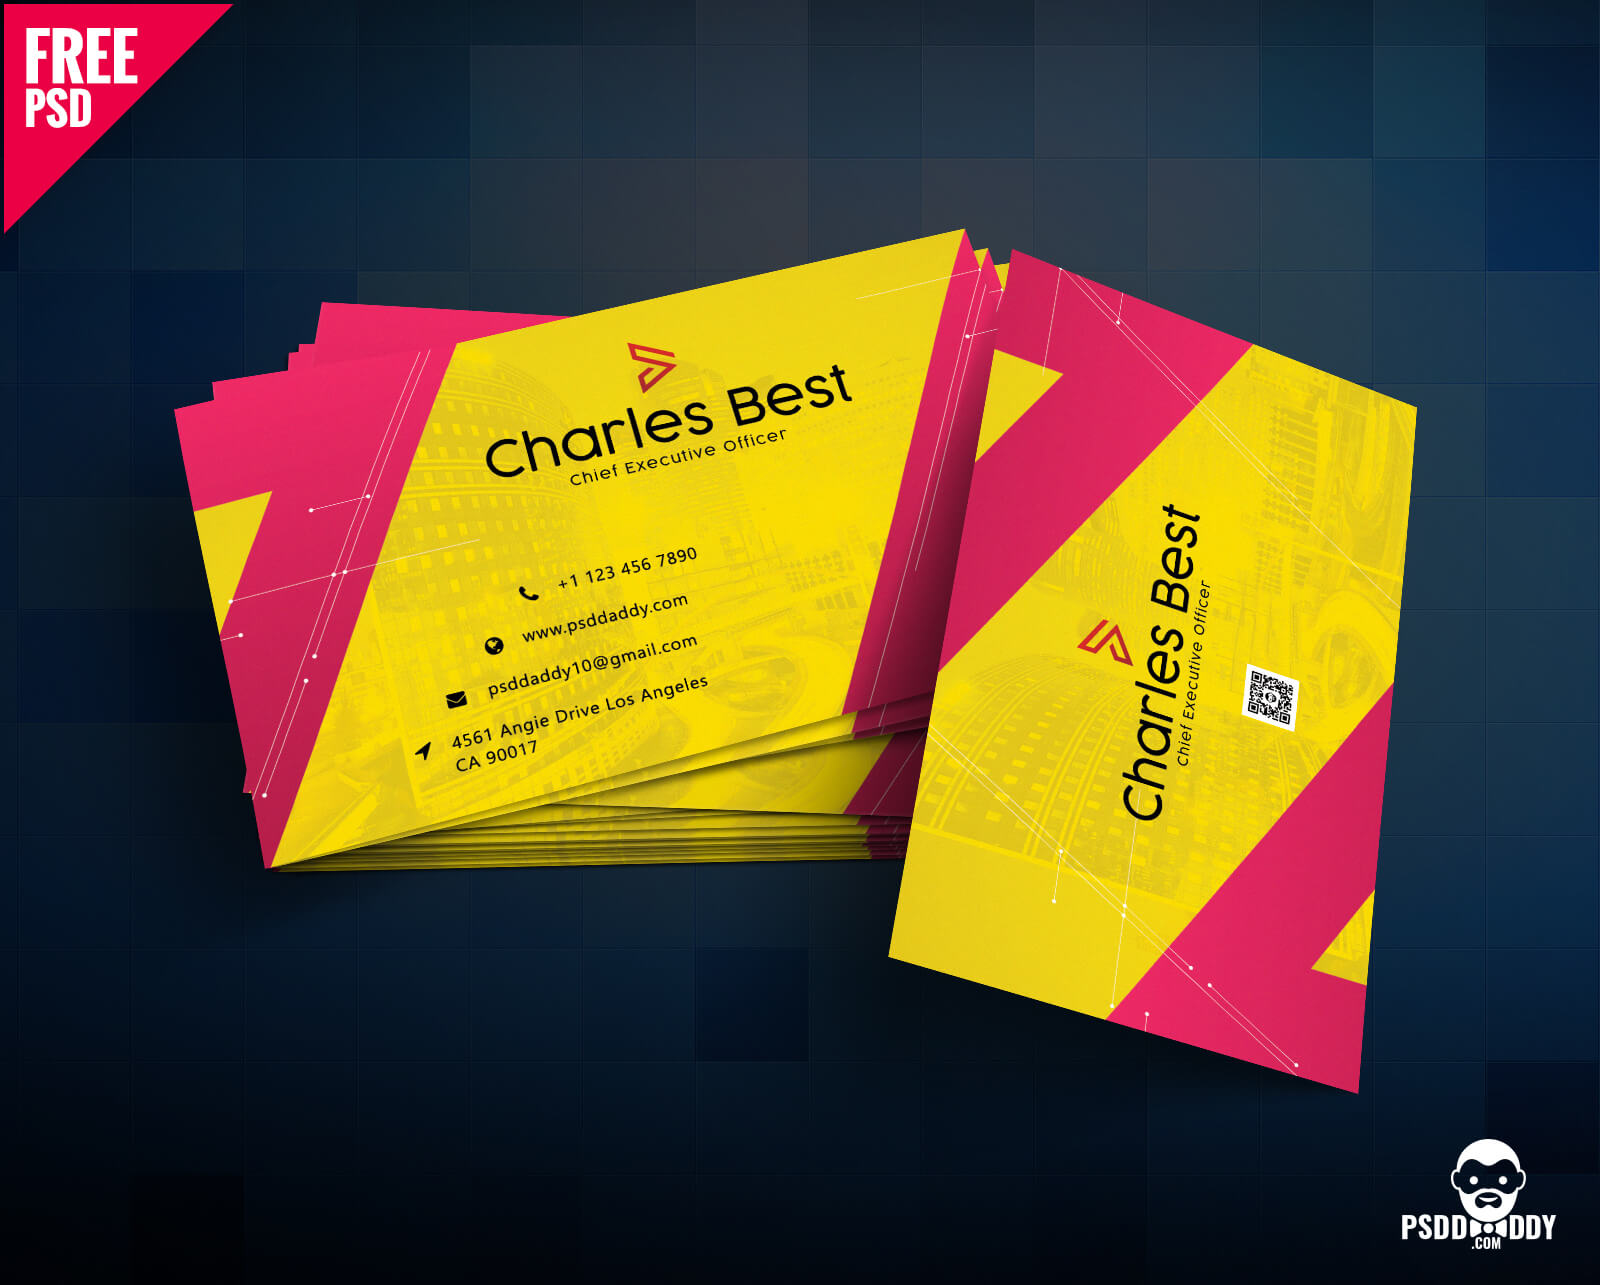 Download] Creative Business Card Free Psd | Psddaddy In Business Card Template Size Photoshop